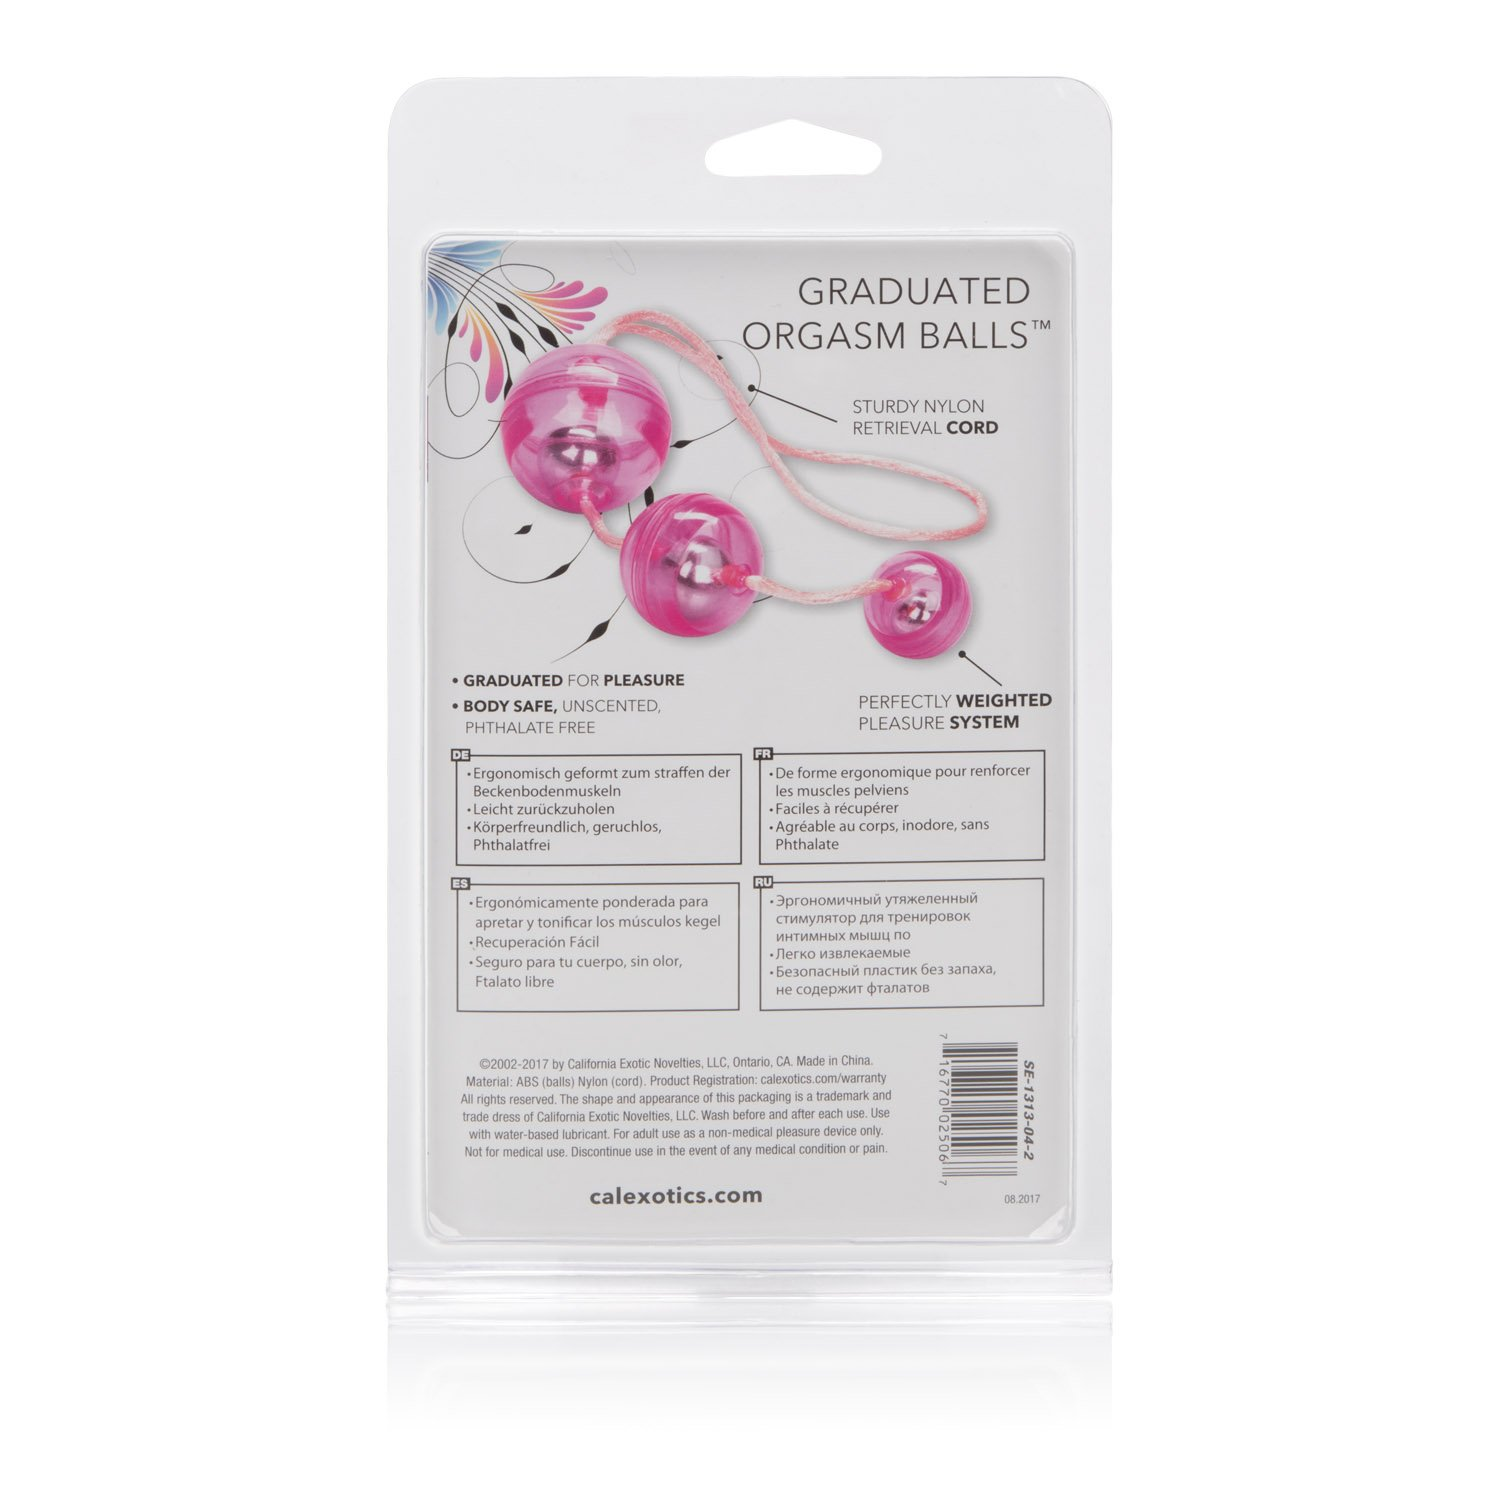 Amazon.com: CalExotics Graduated Orgasm Balls - Duotone Ben Wa Kegel  Weights - Pelvic Floor Exercise - Adult Sex Toys - Pink: Health & Personal  Care